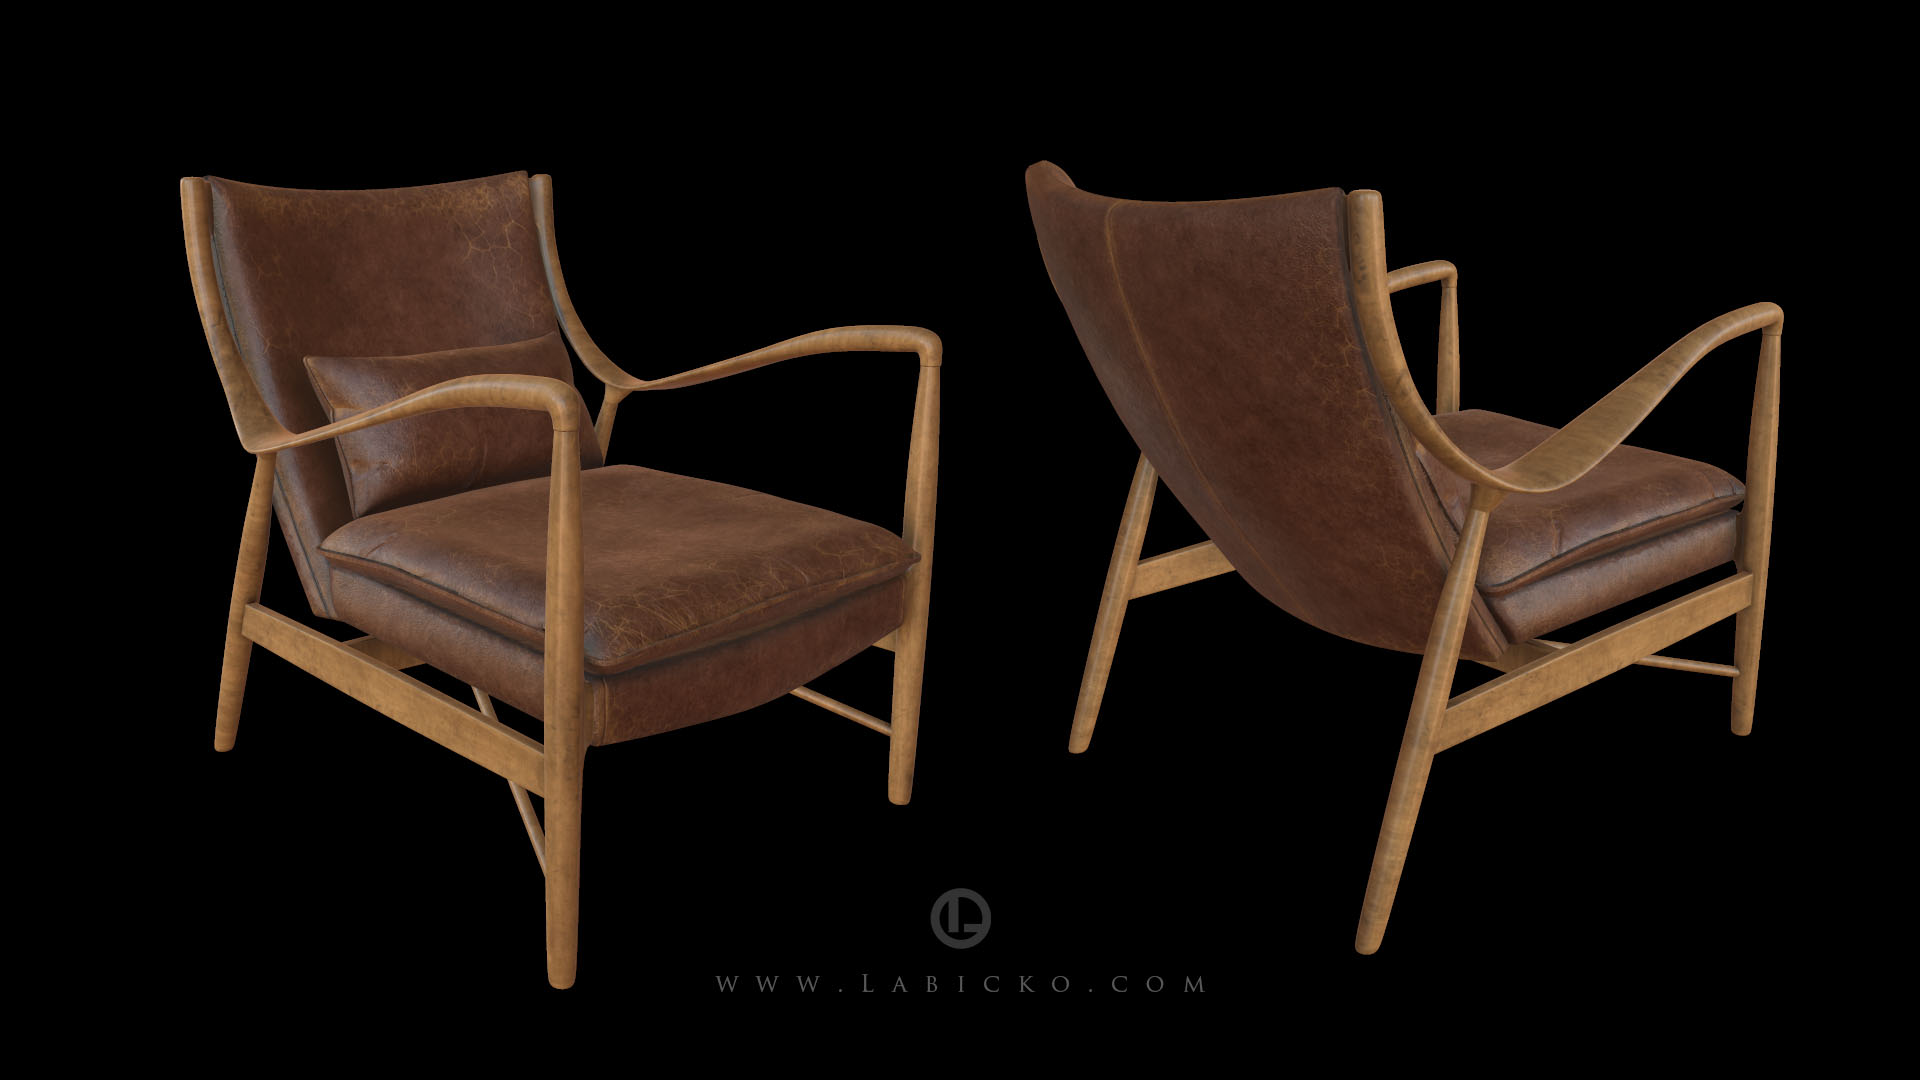 Leather_Armchair%203D%20Model%20WebGL.jpg